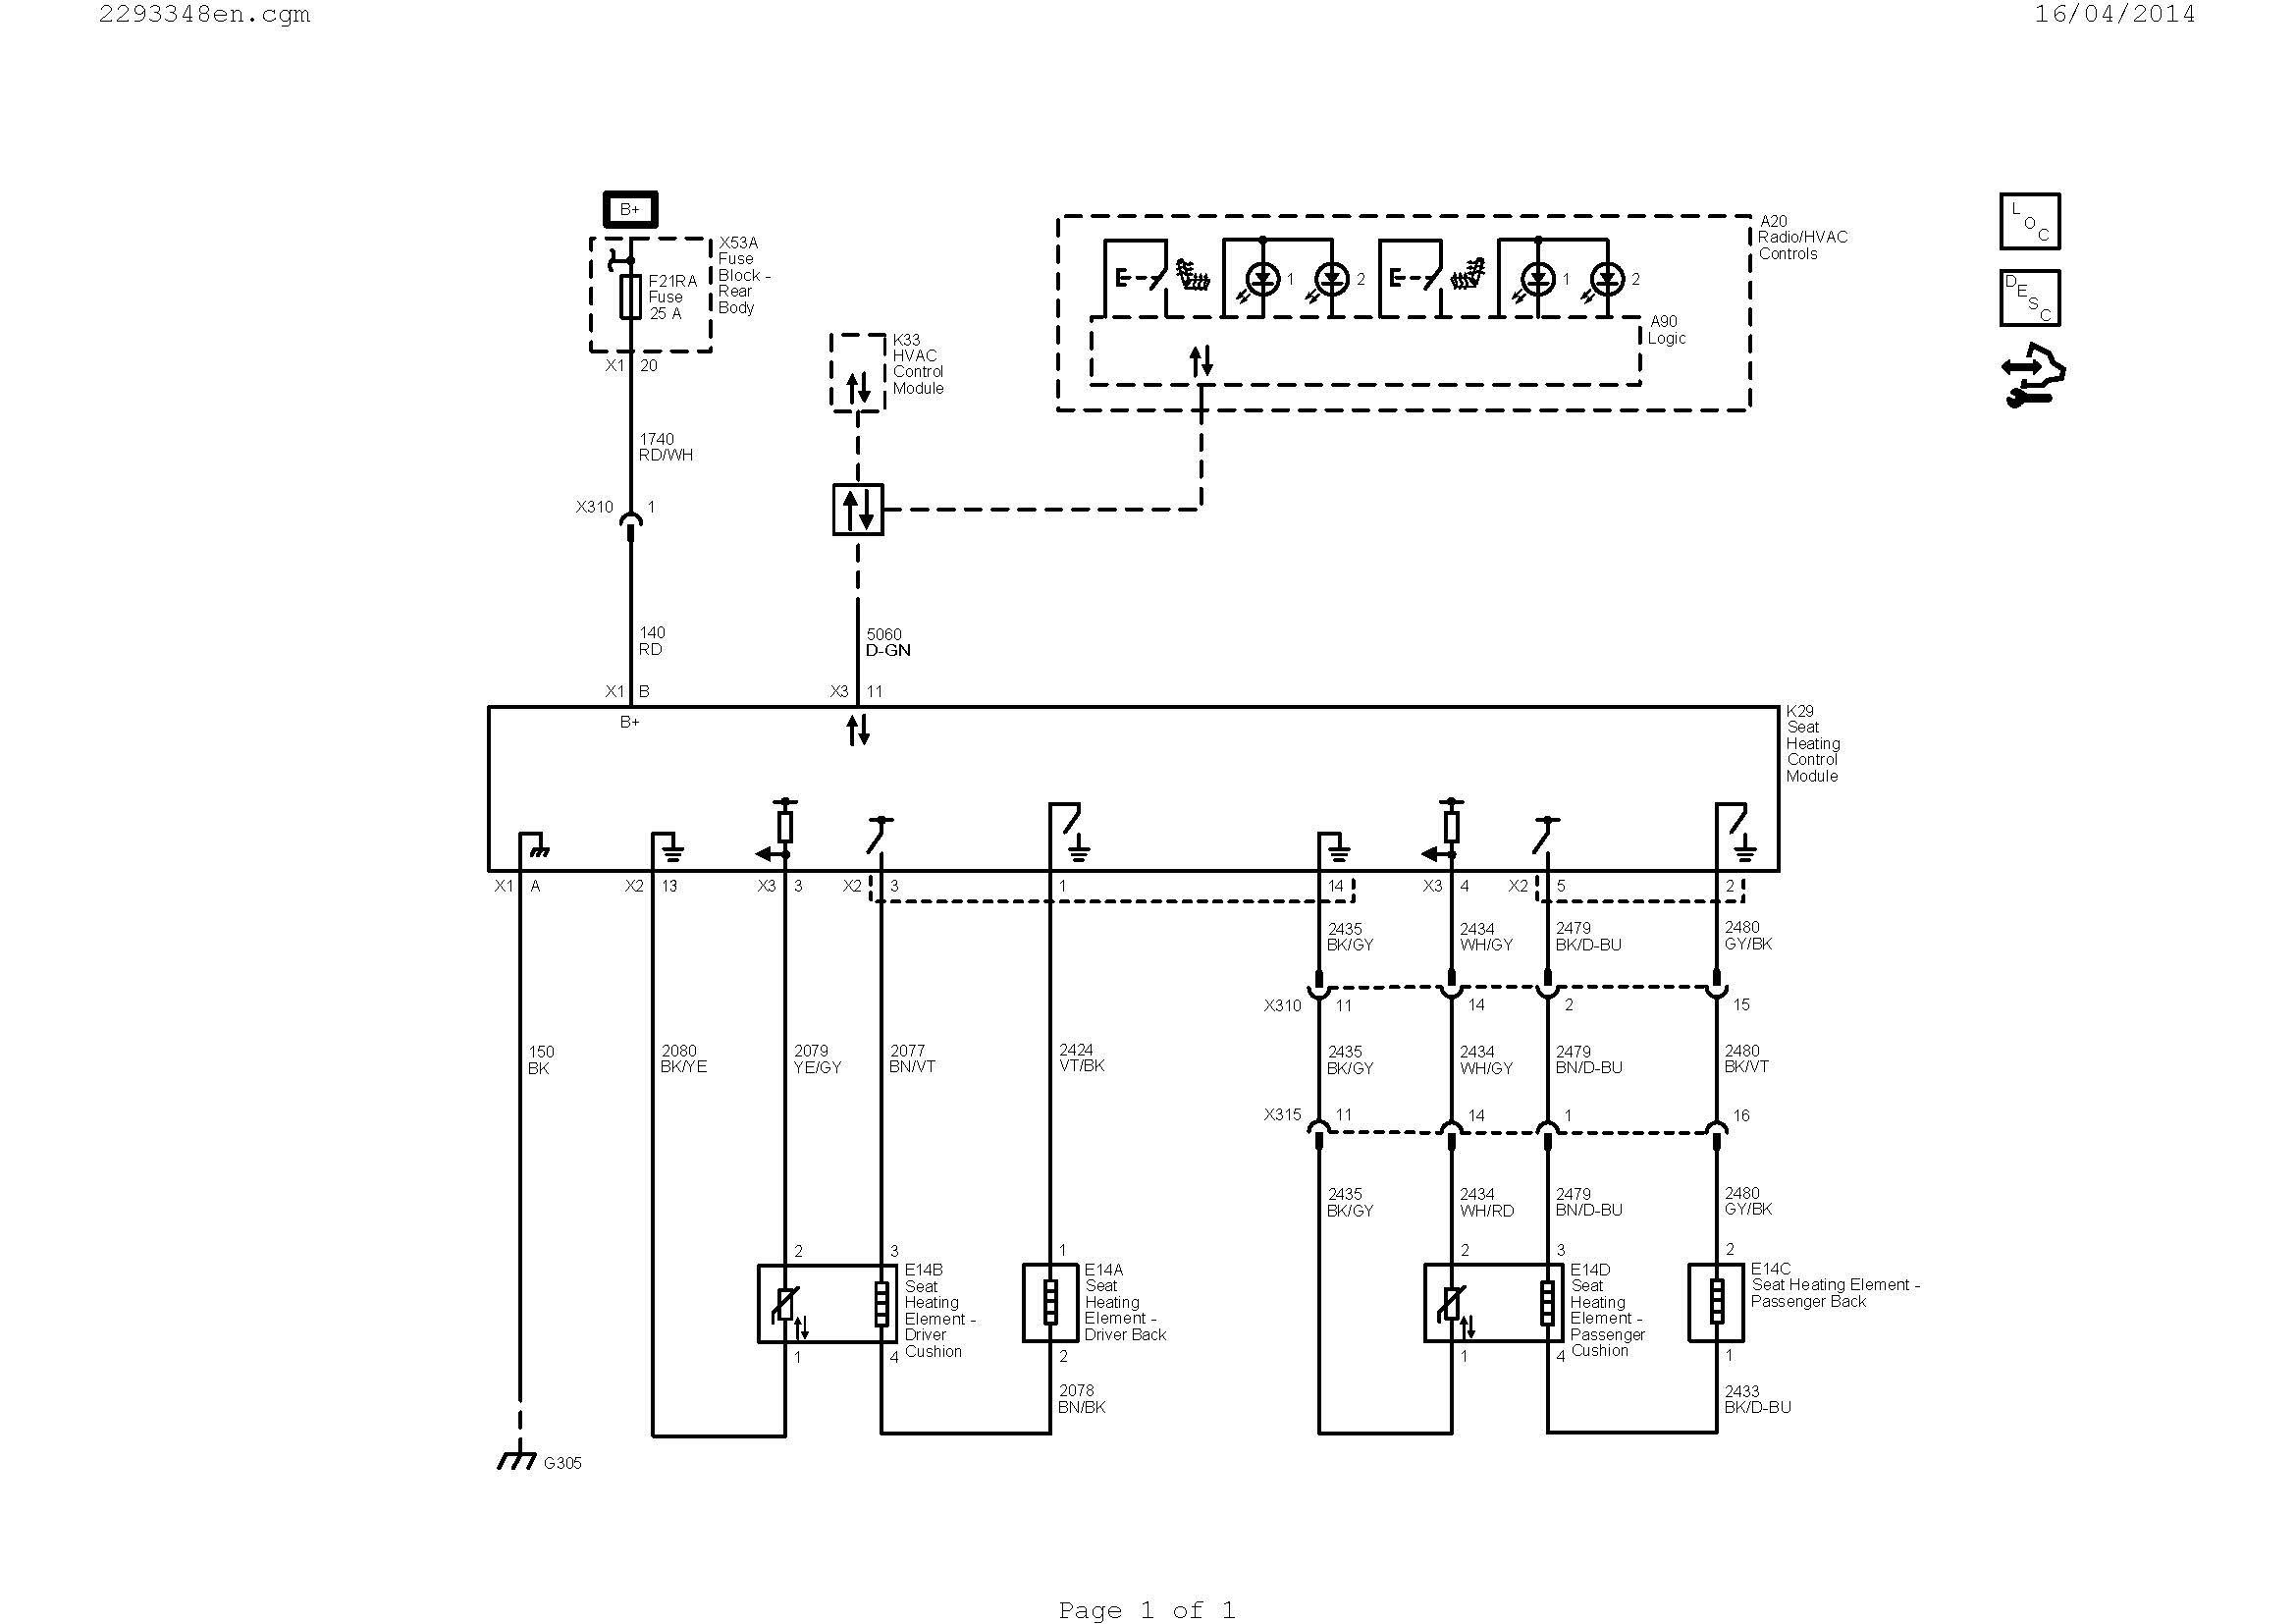 hvac thermostat wiring diagram Collection-Nest Wireless thermostat Wiring Diagram Refrence Wiring Diagram Ac Valid Hvac Diagram Best Hvac Diagram 0d 5-r